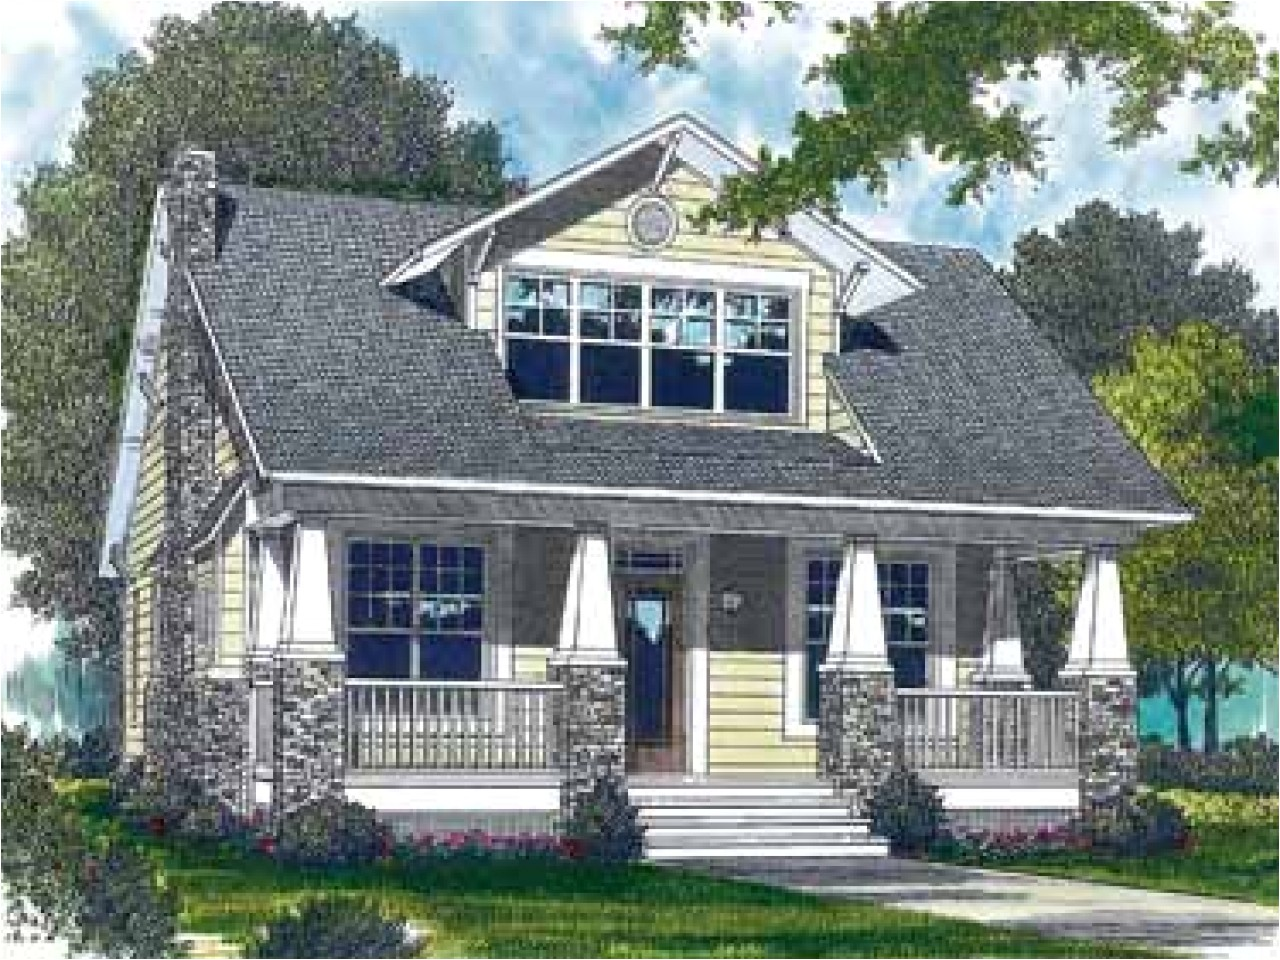 Home Plans Craftsman Style Craftsman Style Bungalow House Plans Craftsman Style Porch